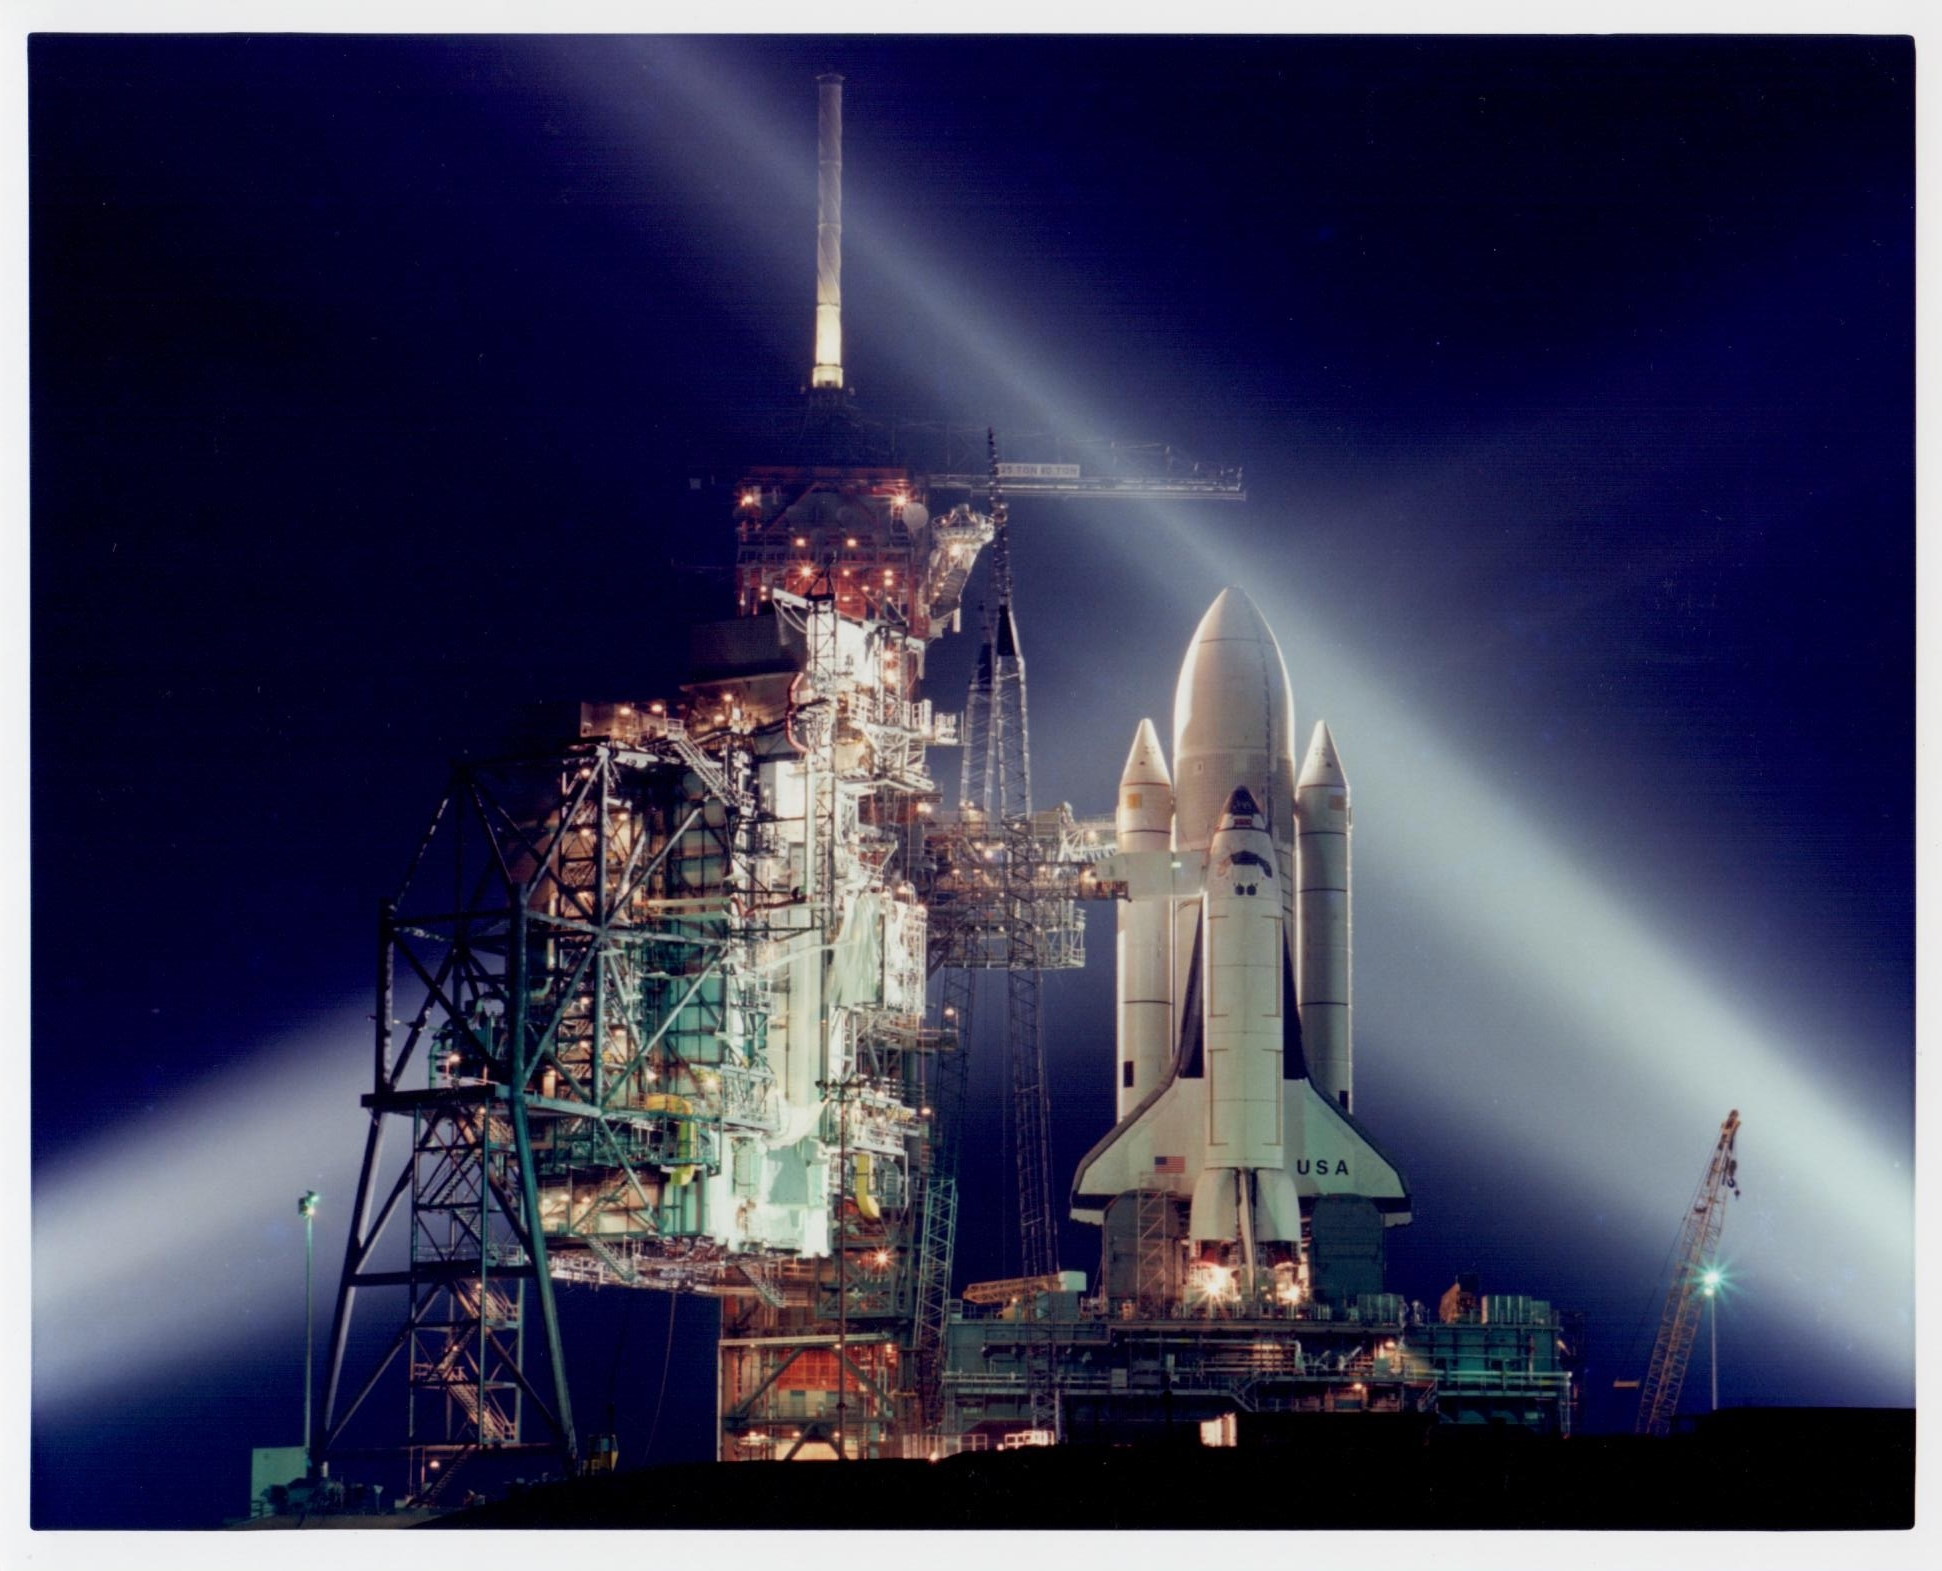 Space Shuttle STS-1 at Kennedy Space Center, Shuttle, March 1981